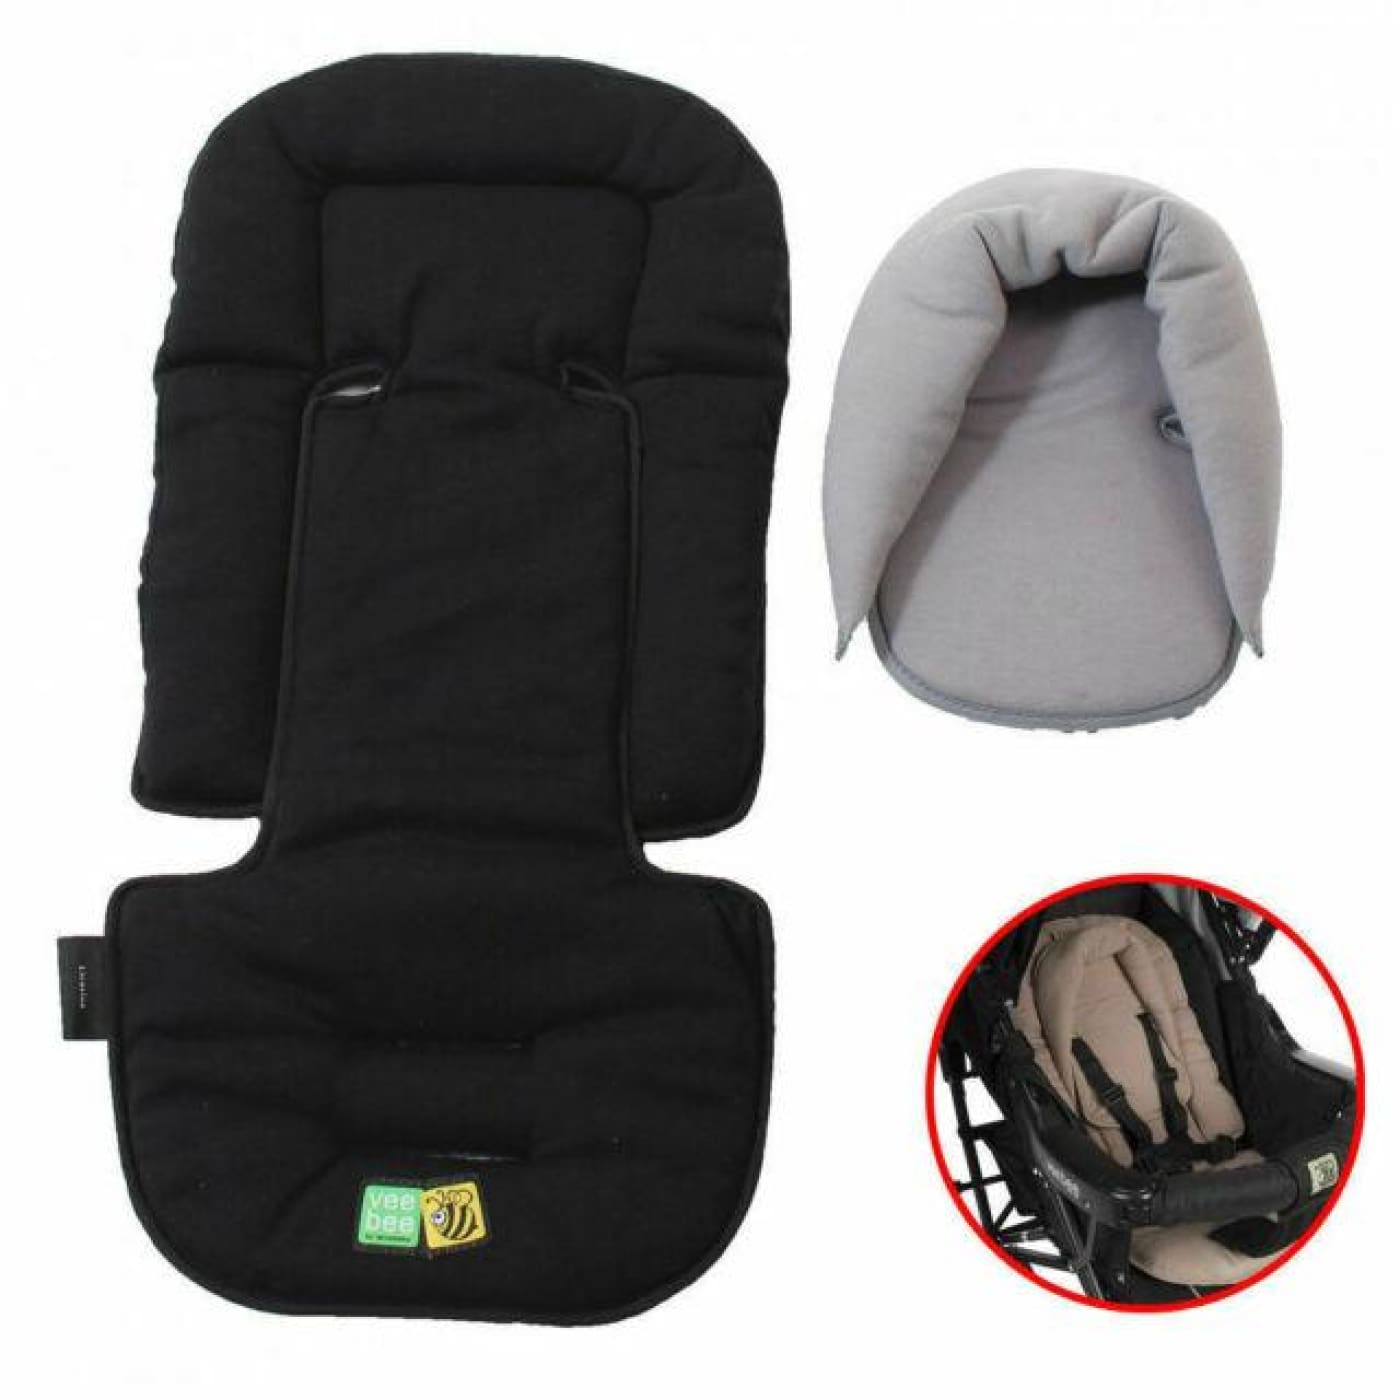 Veebee Allsorts Seat Pad & Head Hugger - Licorice - Licorice - PRAMS & STROLLERS - HEAD SUPPORTS